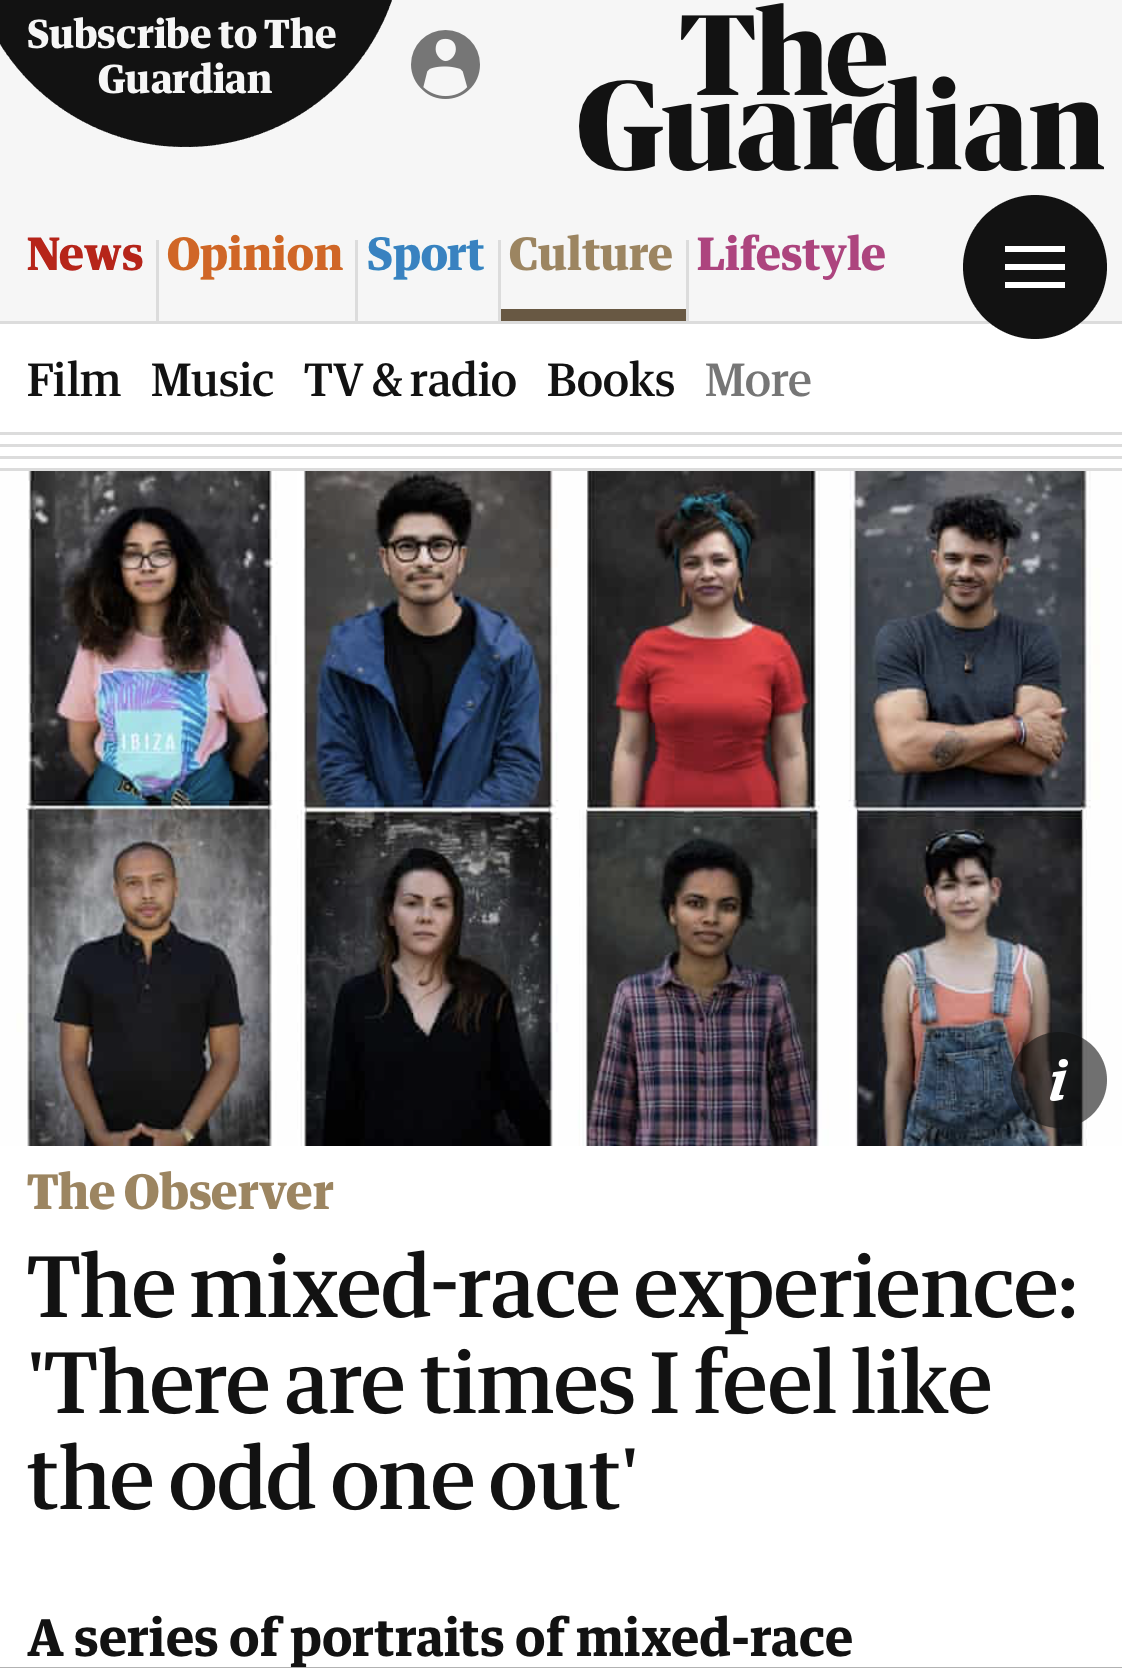 - https://www.theguardian.com/artanddesign/2018/aug/26/the-mixed-race-experience-there-are-times-i-feel-like-the-odd-one-out-